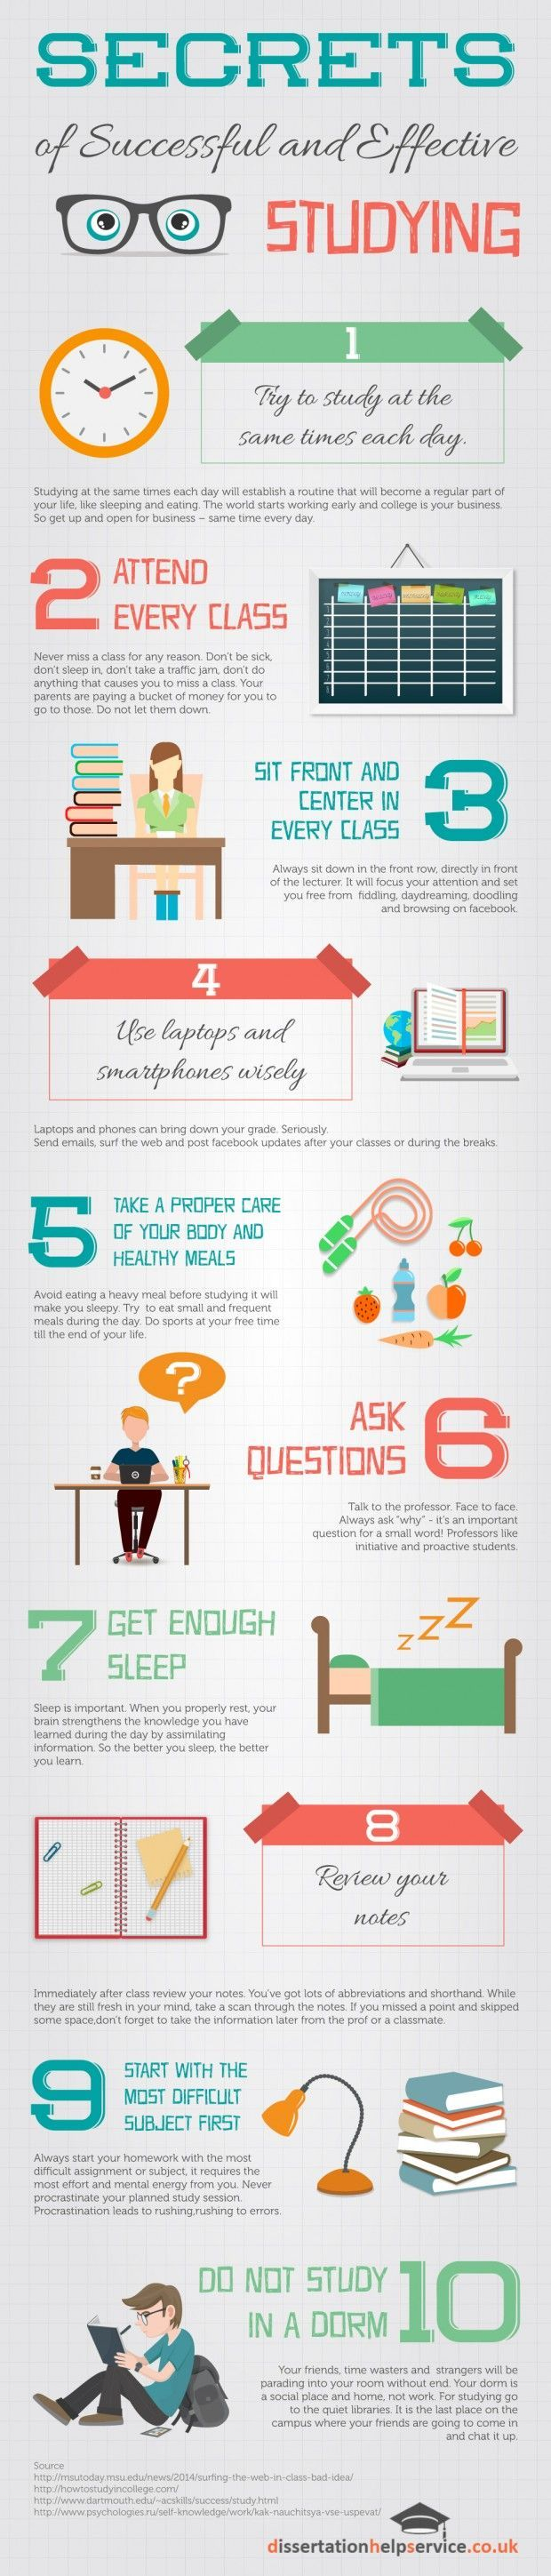 Secrets of Successful and Effective Studying Infographic Repinned by Chesapeake College Adult Ed. We offer free classes on the Eastern Shore of MD to help you earn your GED - H.S. Diploma or Learn English (ESL). www.Chesapeake.edu